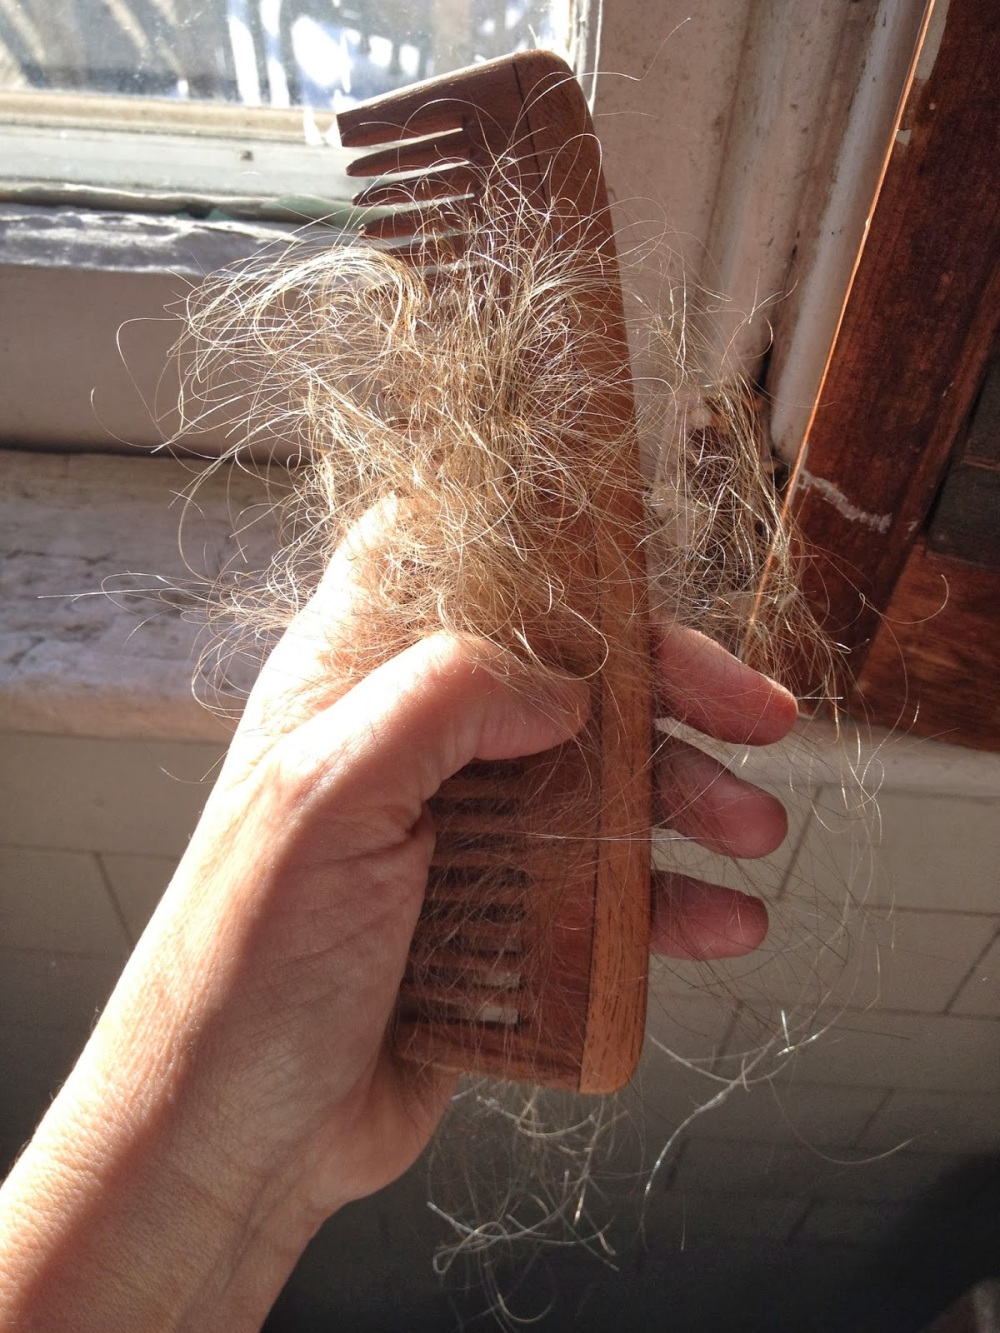 A comb with a bunch of blond hairs. That used to be in my head.